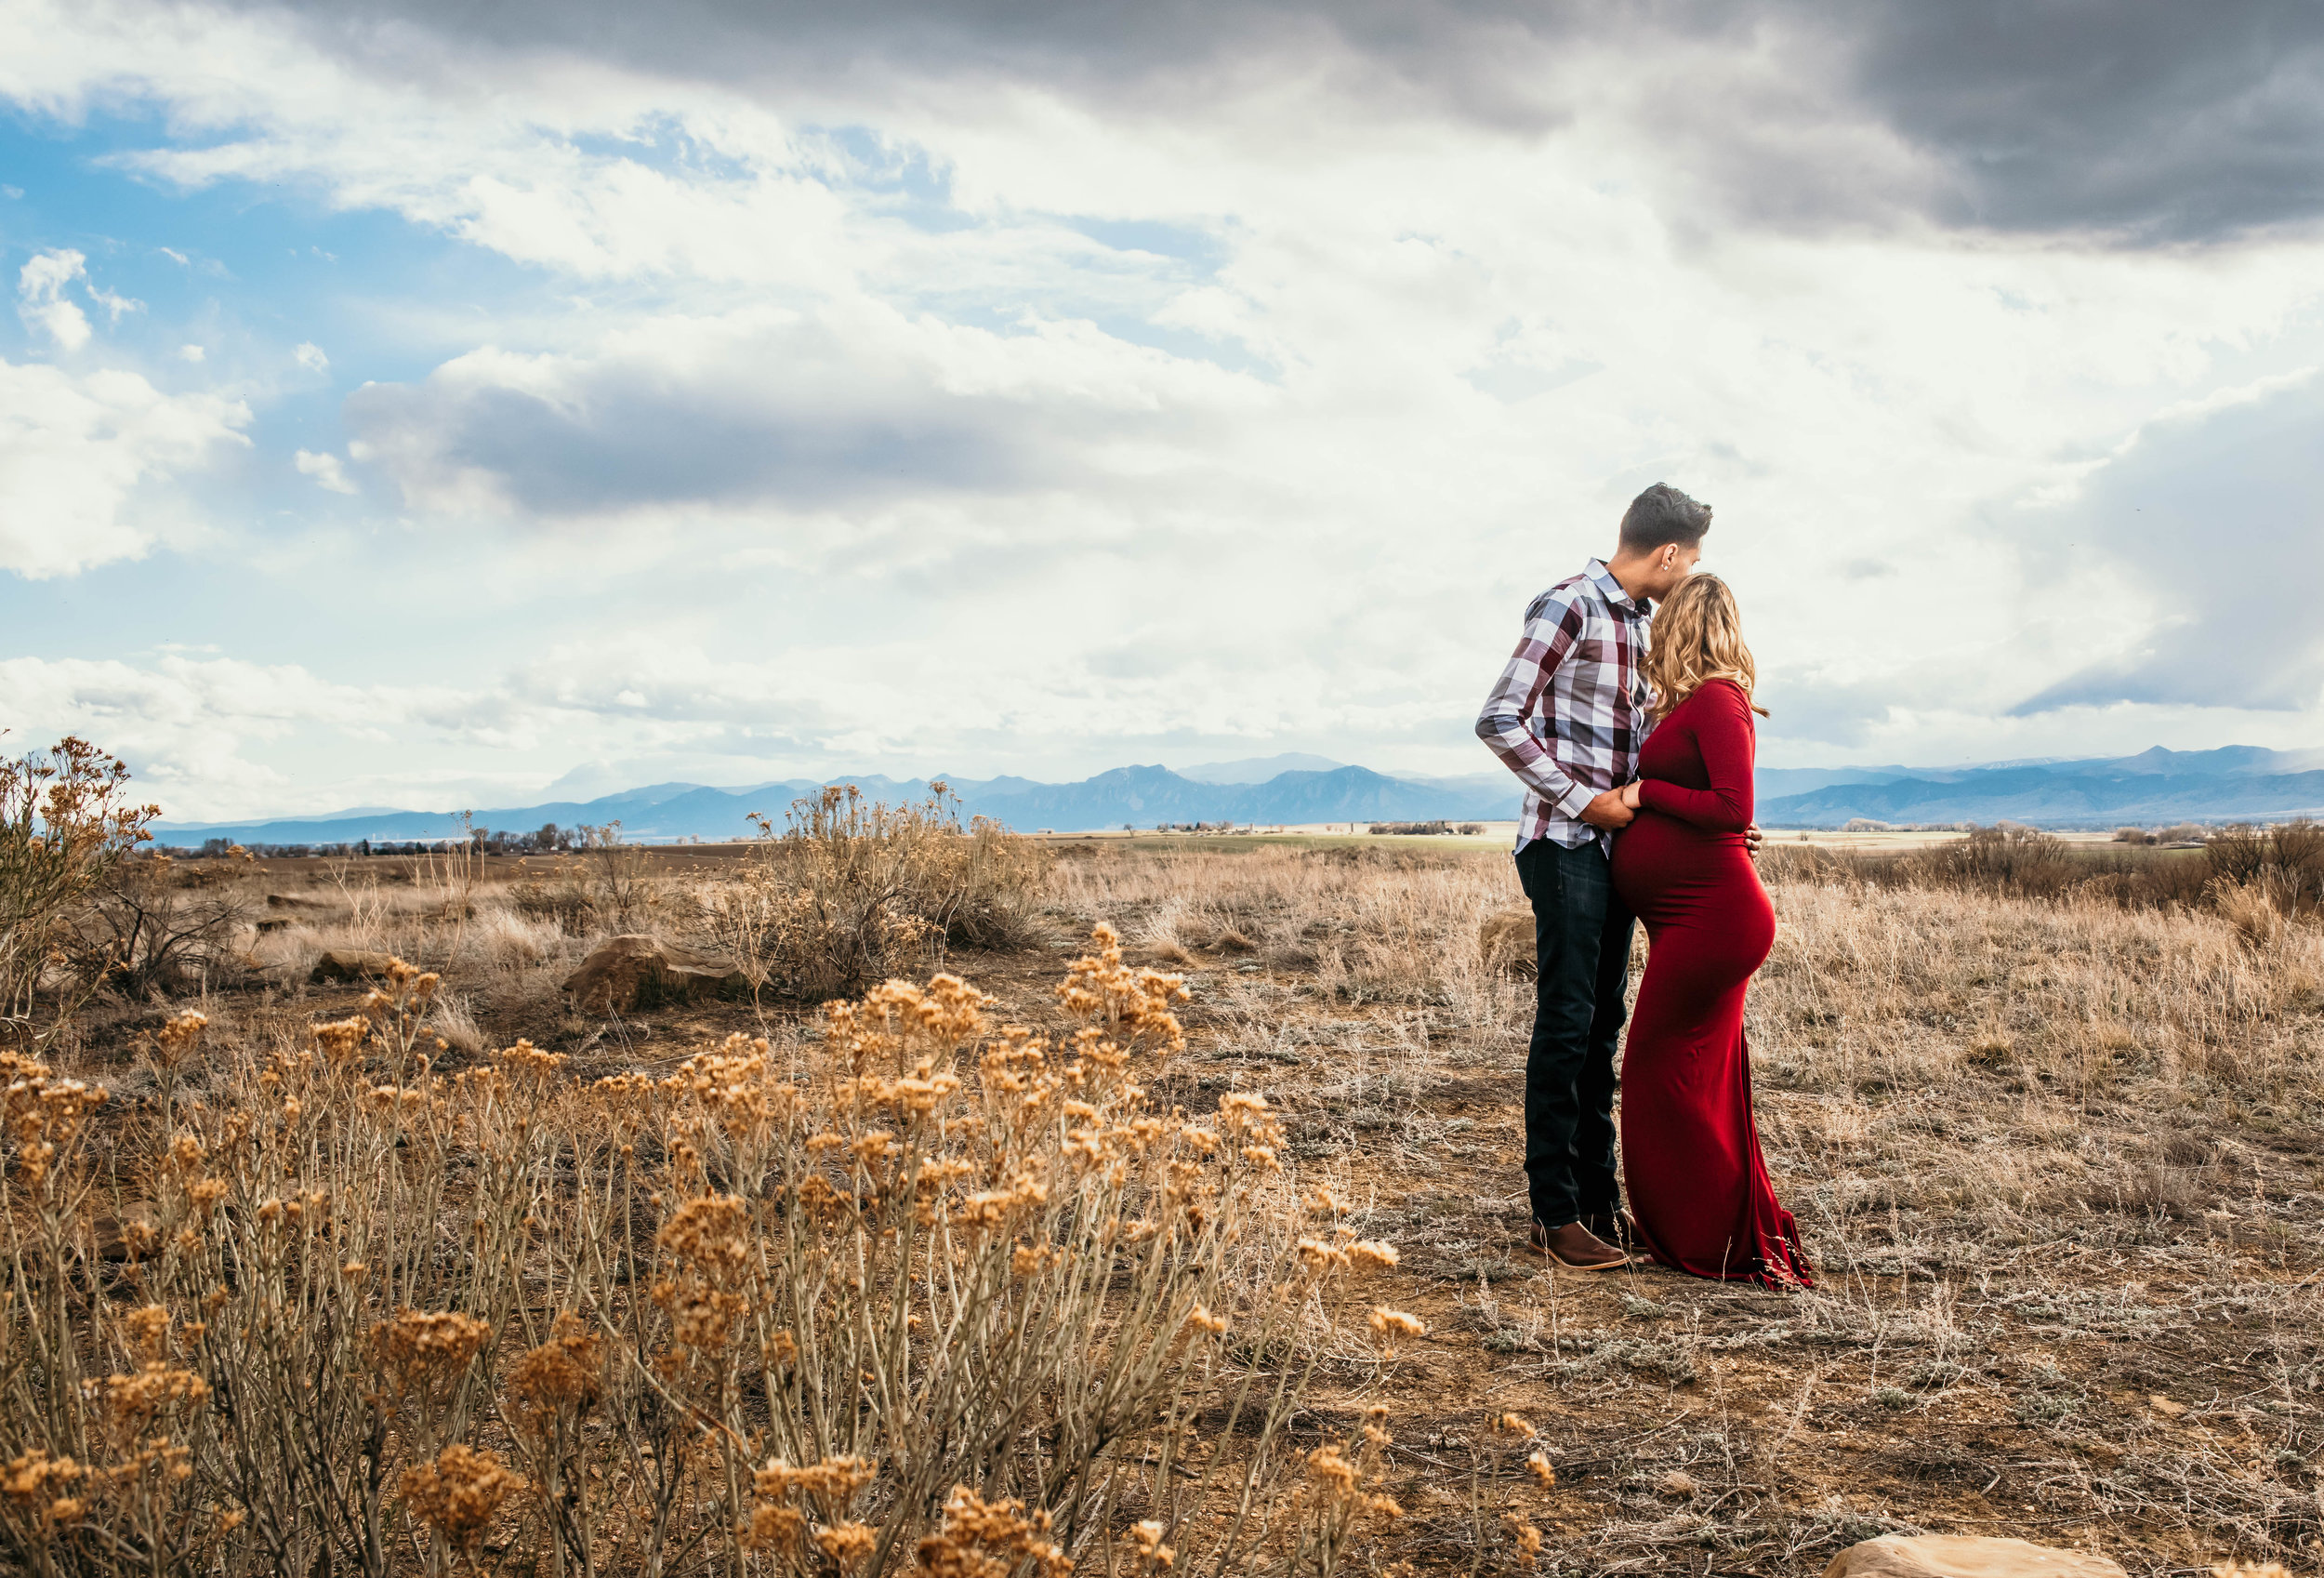 Miss. Miller's Photography | Colorado Photographer | Denver Photographer | red maternity gown | red maternity dress | country maternity photos | Colorado photo shoot | maternity photo shoot ideas